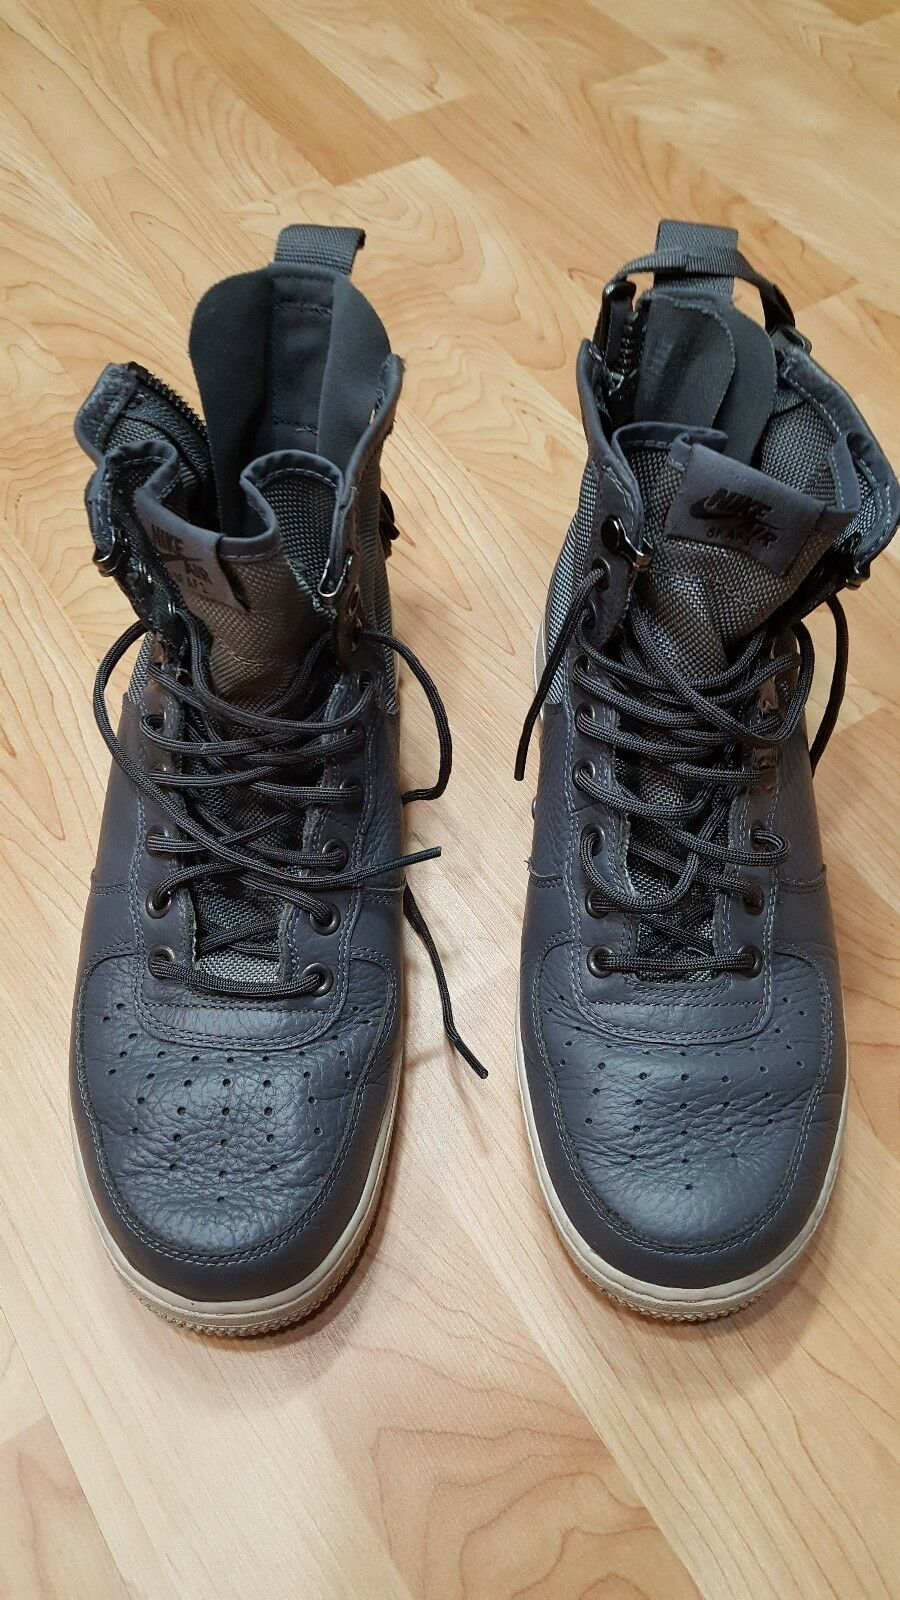 Men's SF AF1 Mid Special Force Air Force 917753 004 Dark Grey SZ 9 shoes EUC